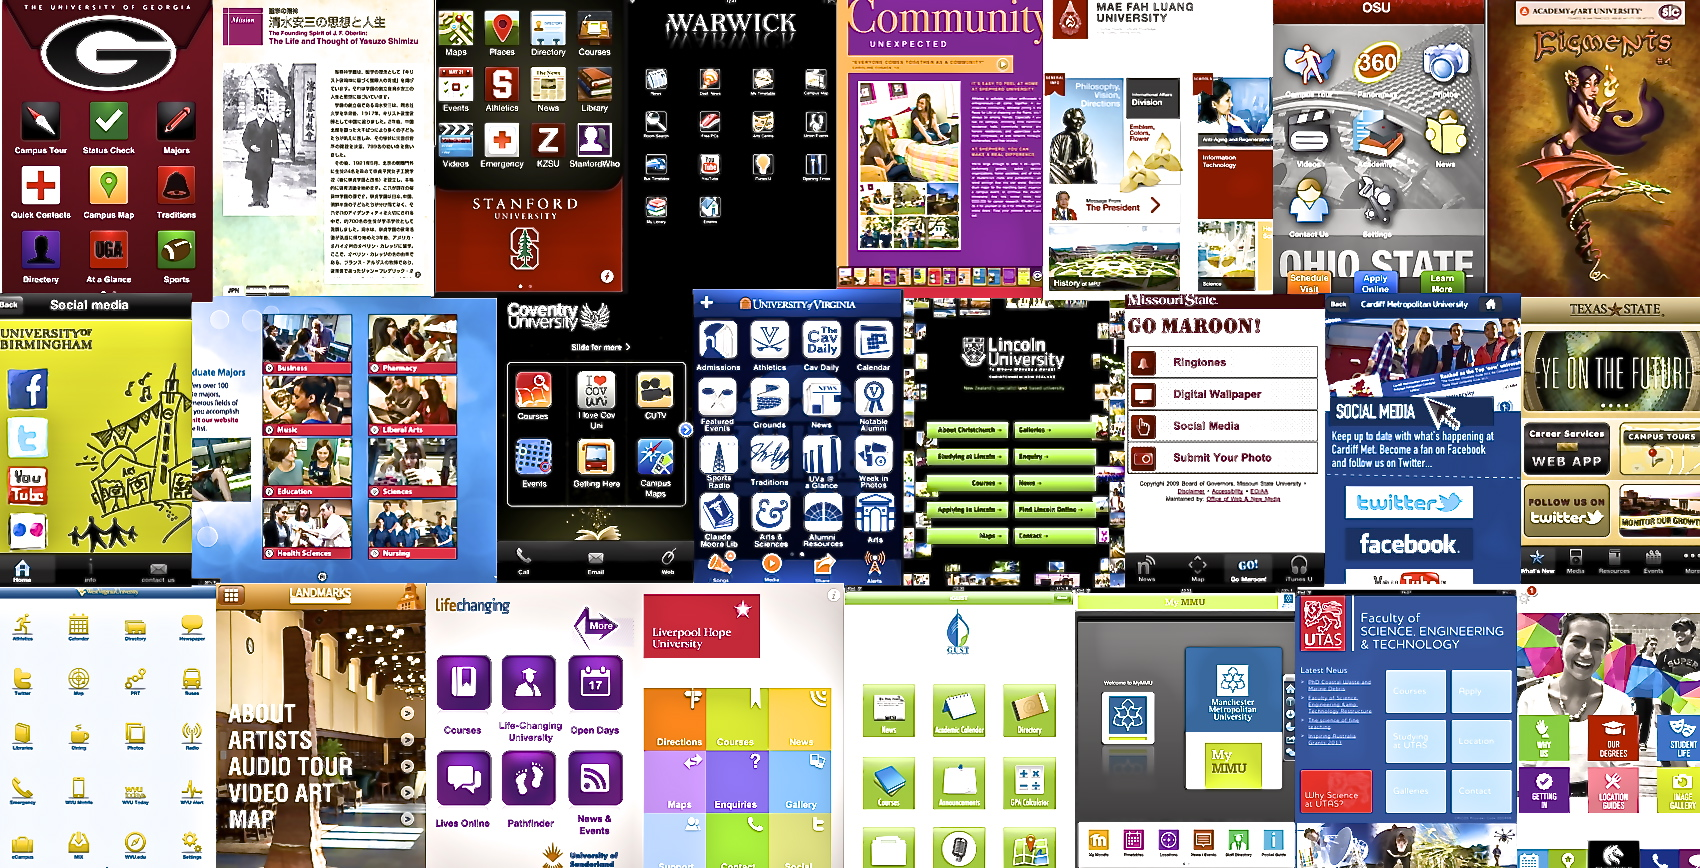 APP WALL - Version 2